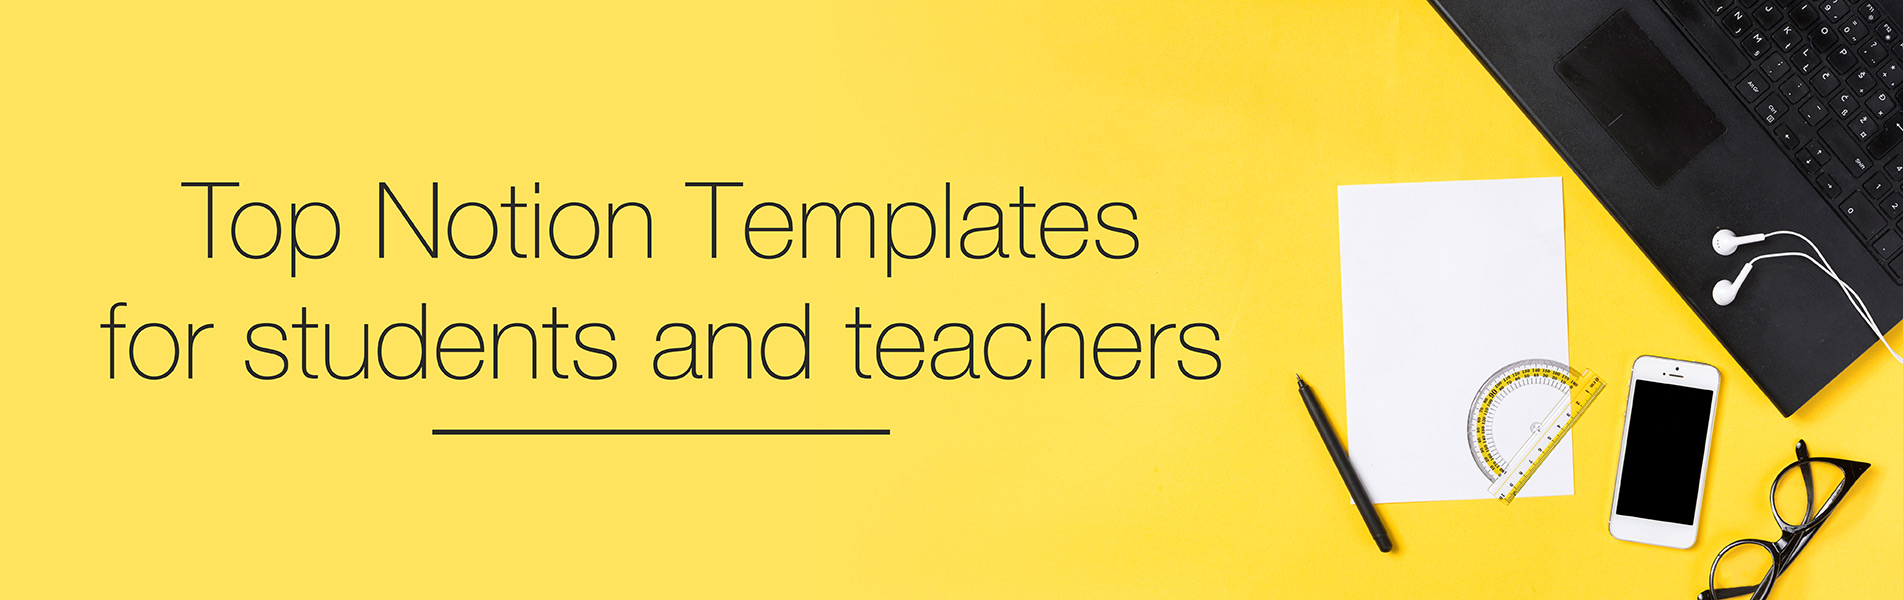 Top-notion-templates-for-students-and-teachers